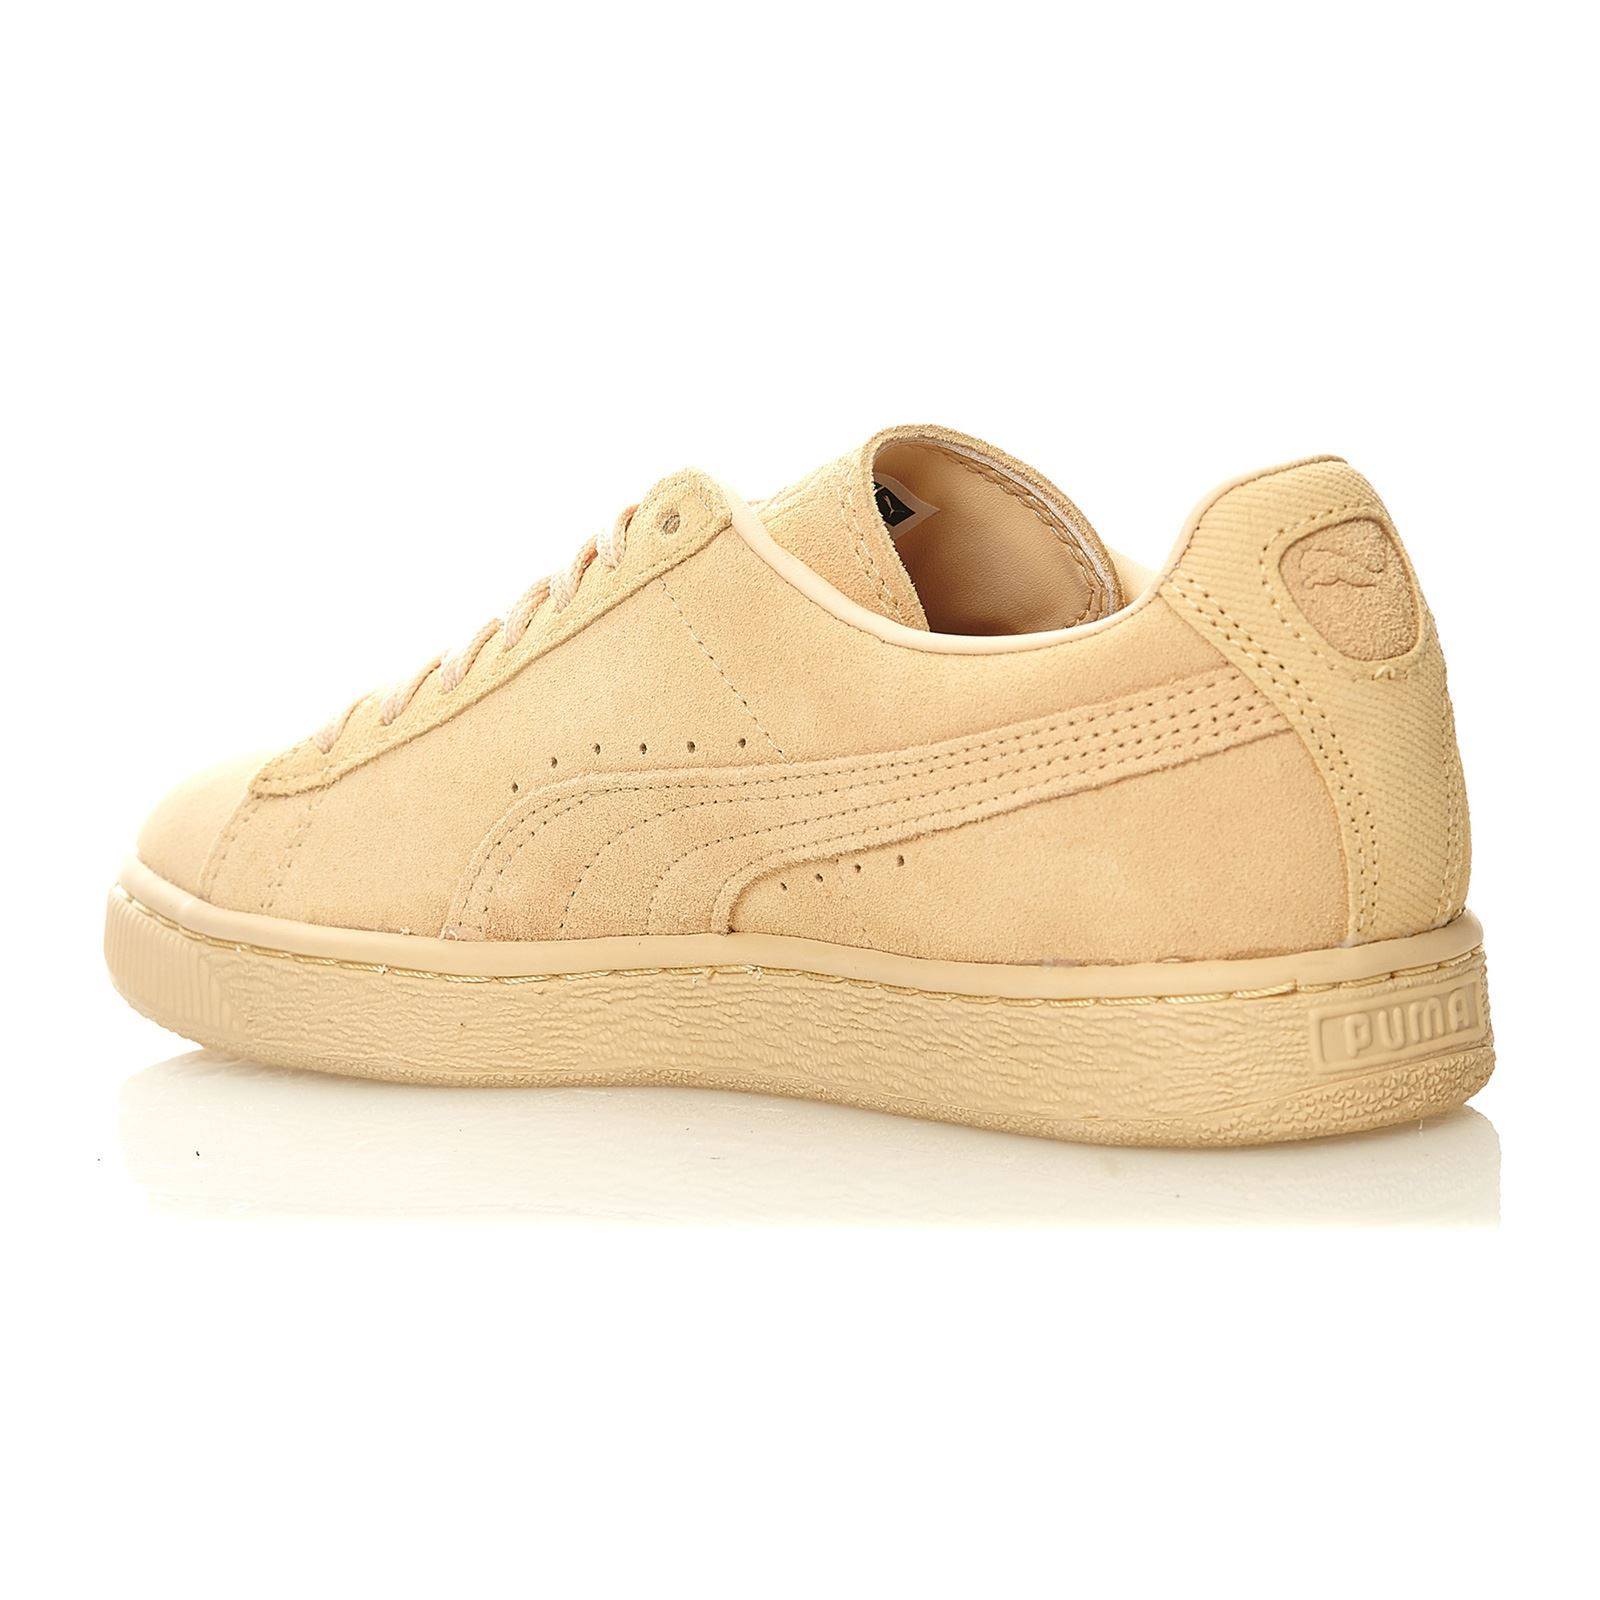 puma suede classic baskets en cuir su d beige. Black Bedroom Furniture Sets. Home Design Ideas